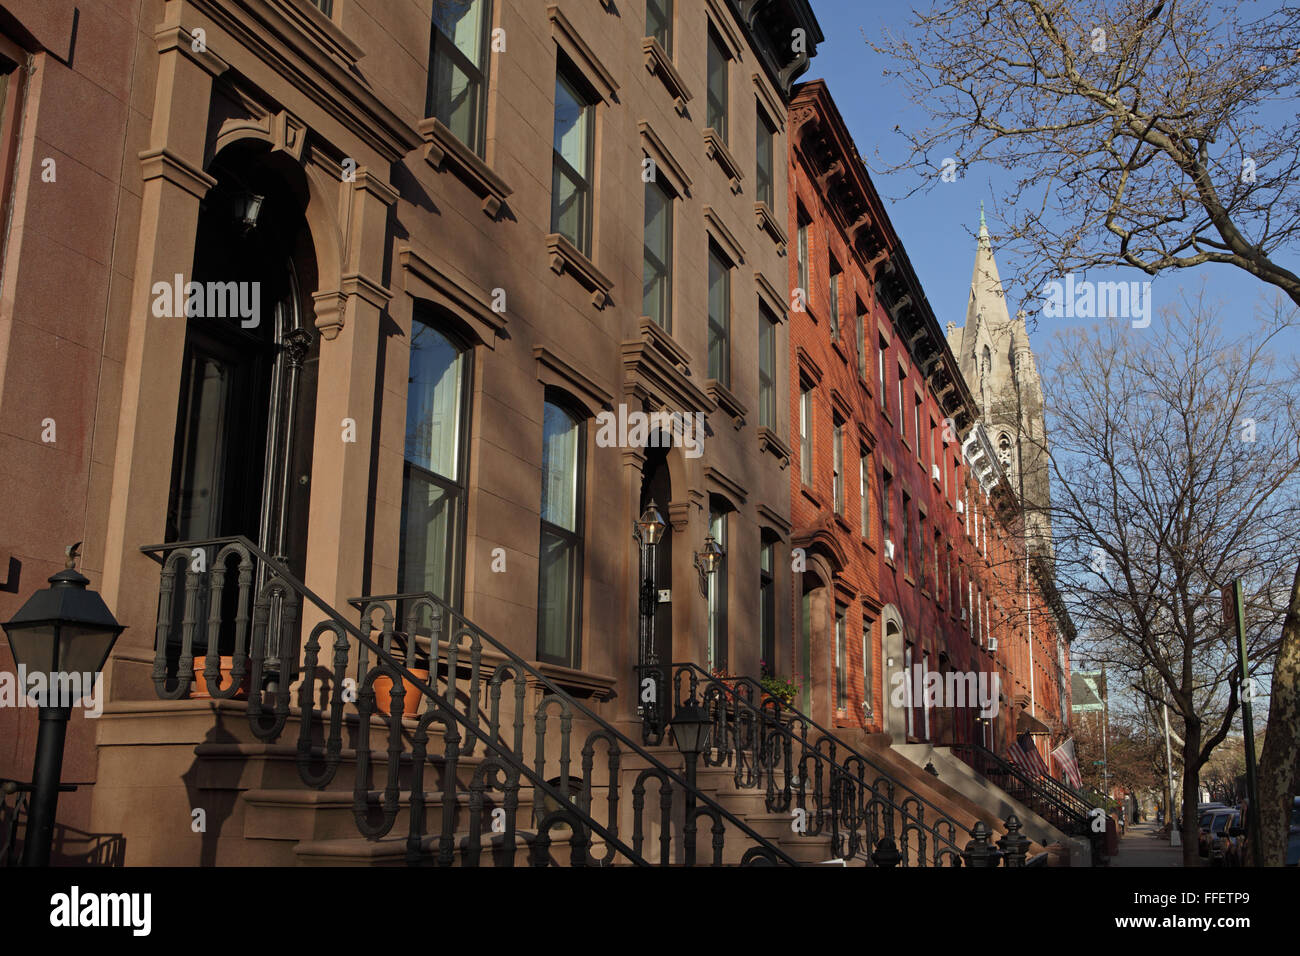 Architectural detail of brownstone townhouses on Sackett Street in Carroll Gardens, Brooklyn - Stock Image